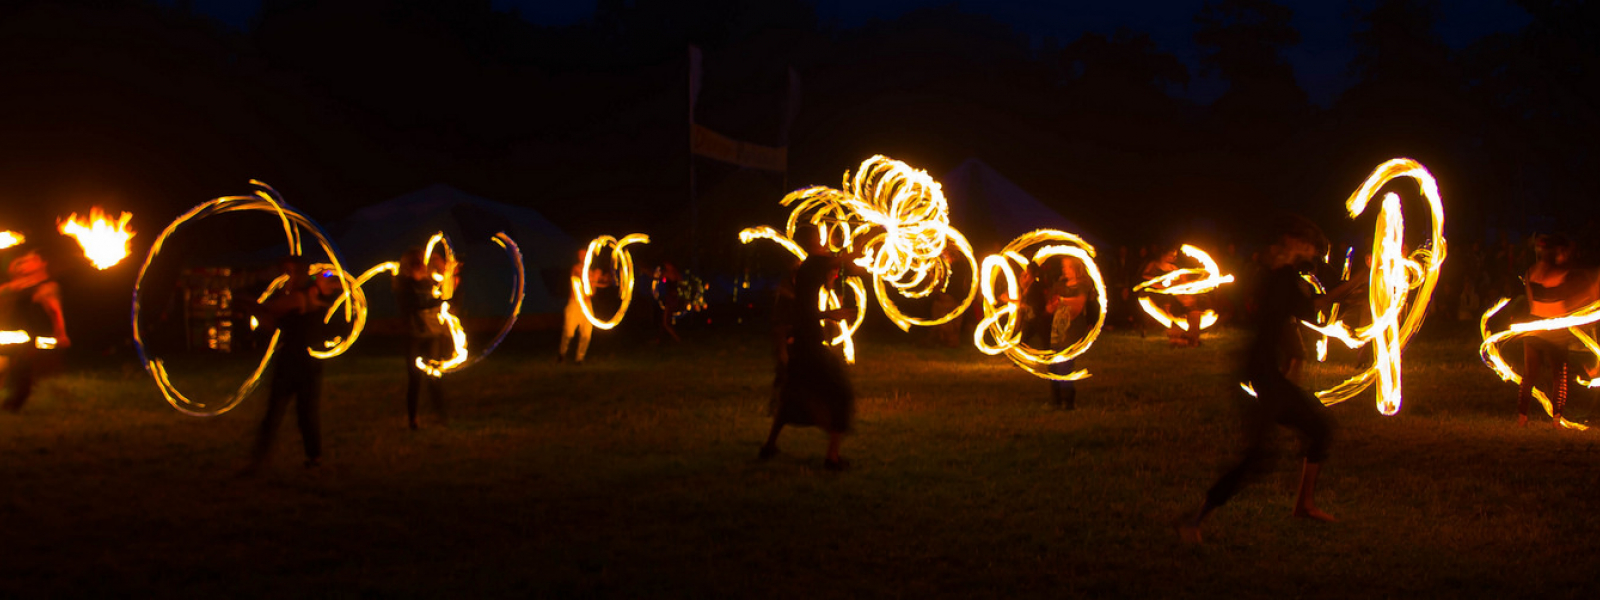 A group of fire-dancers weaving patterns of light in the dark